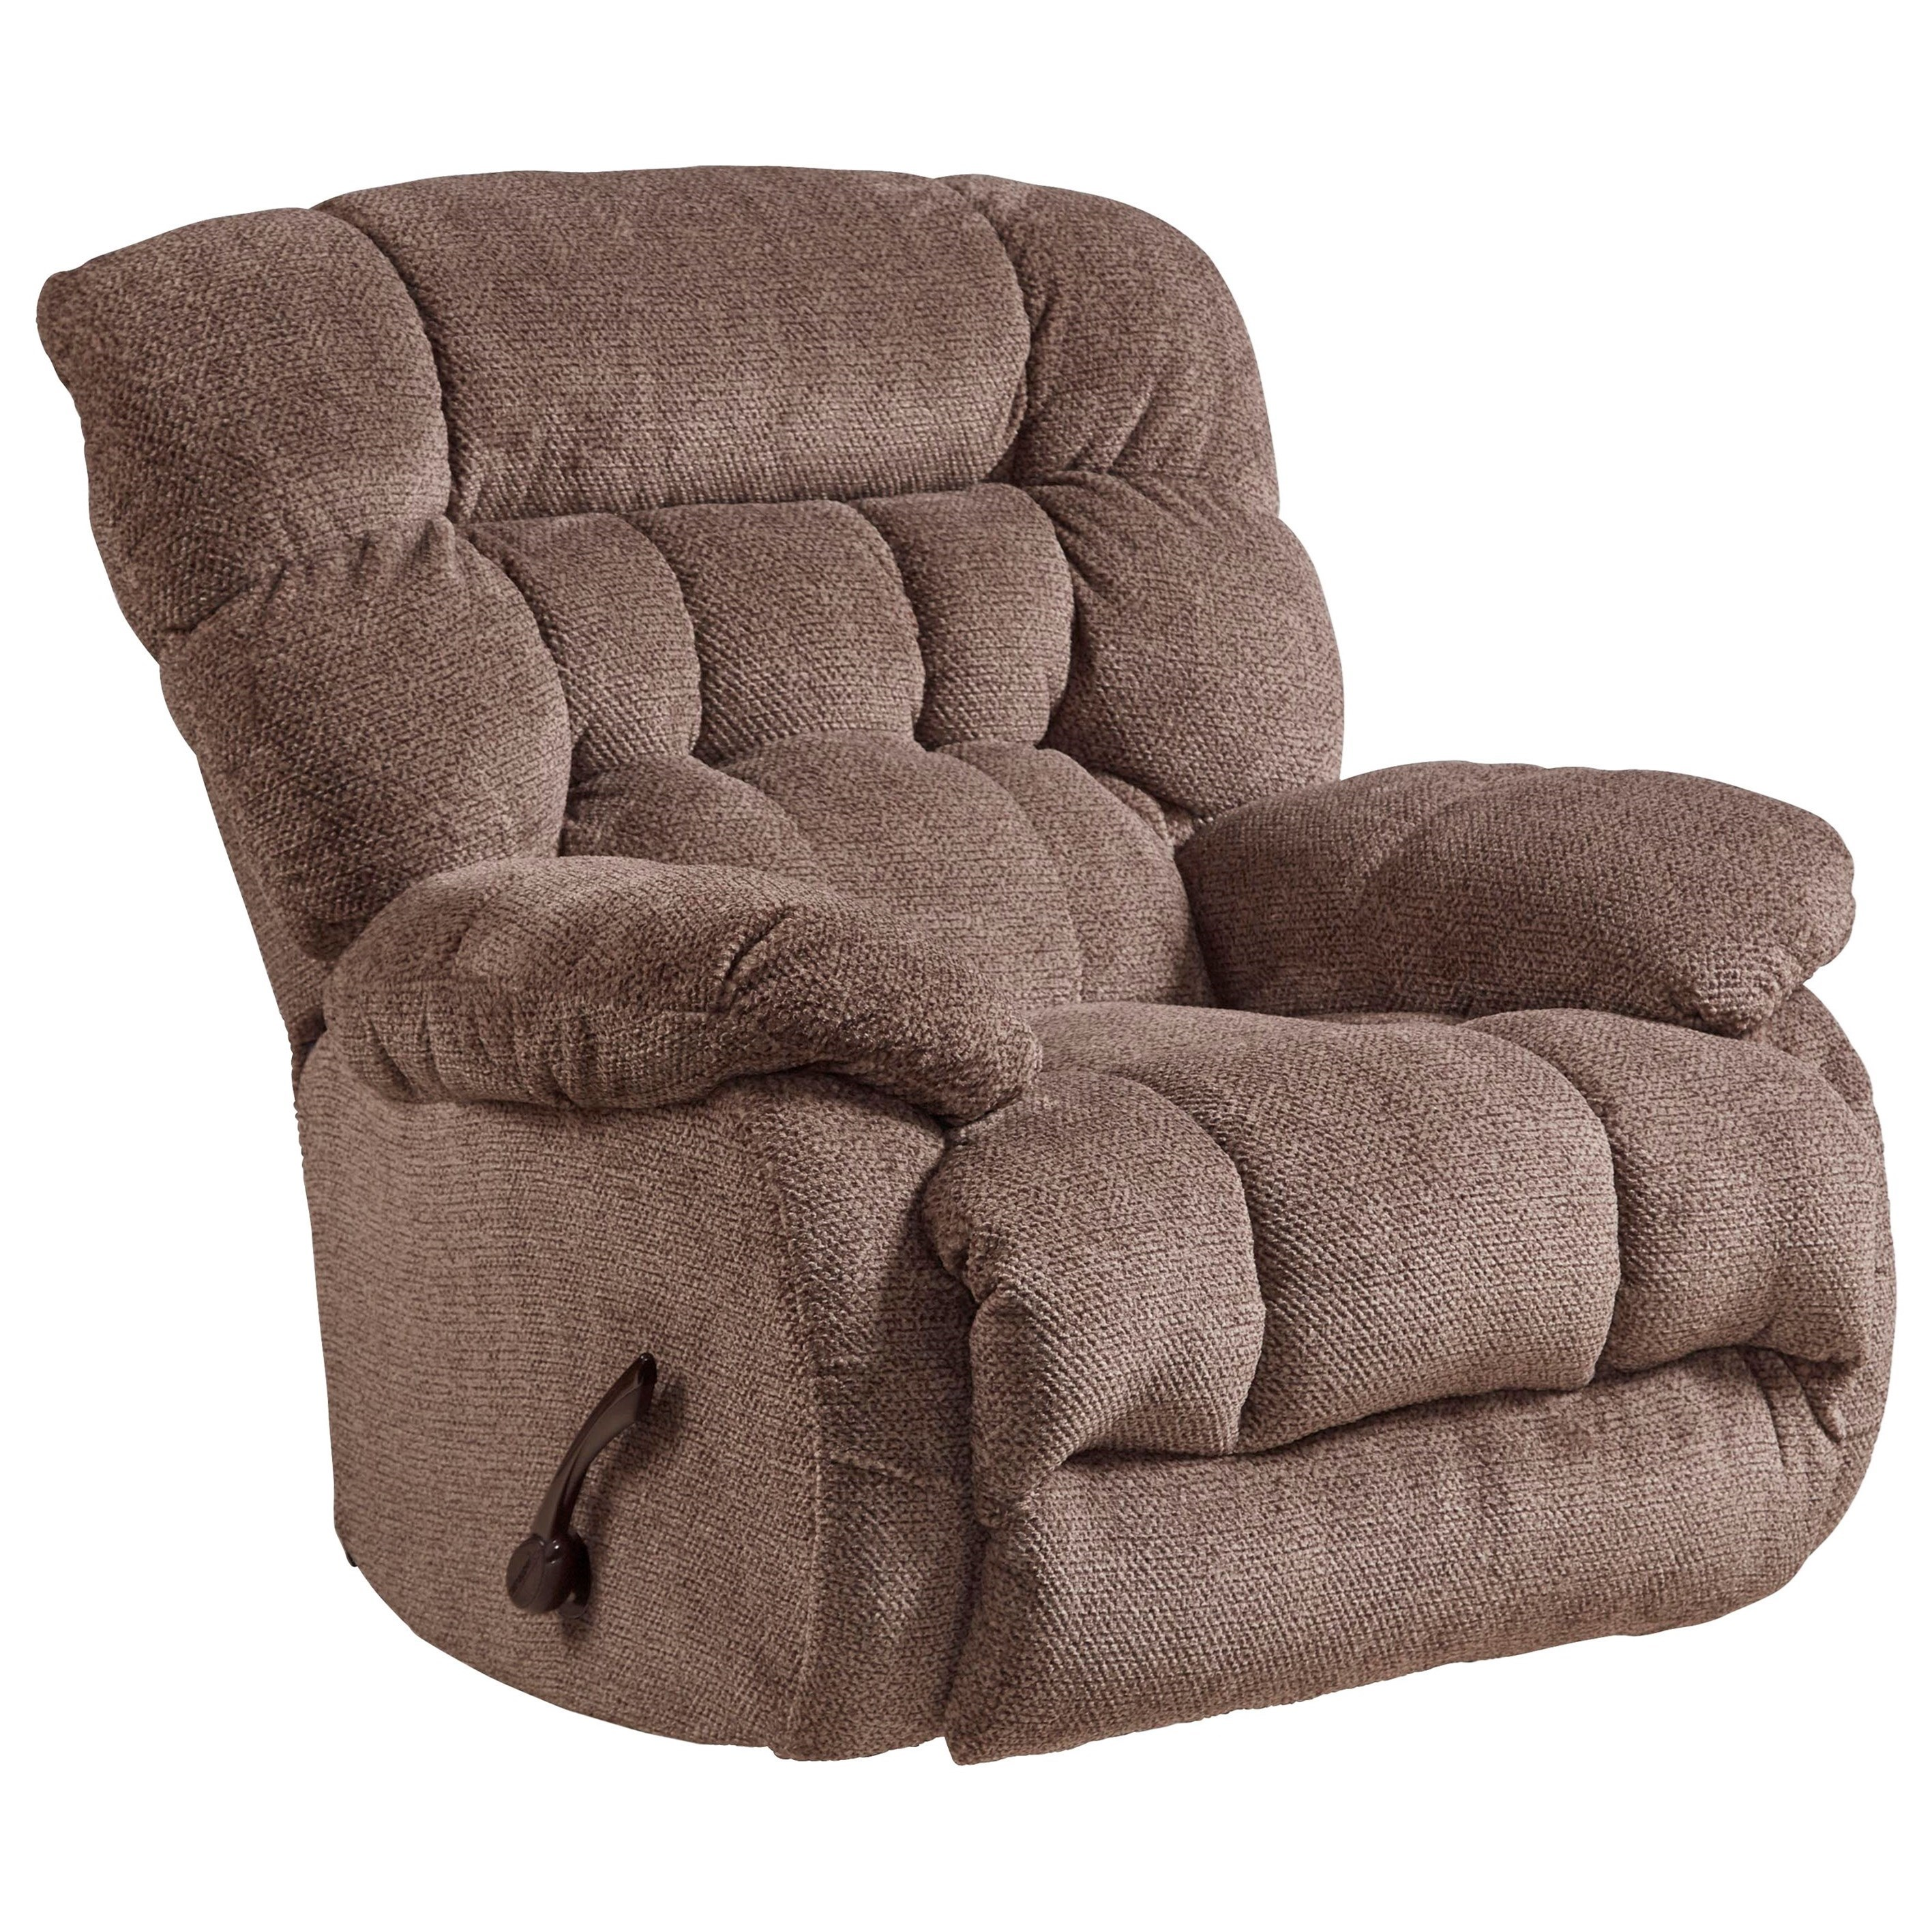 Catnapper Motion Chairs and Recliners Daly Power Lay Flat Recliner - Item Number: 64765-7-1622-29